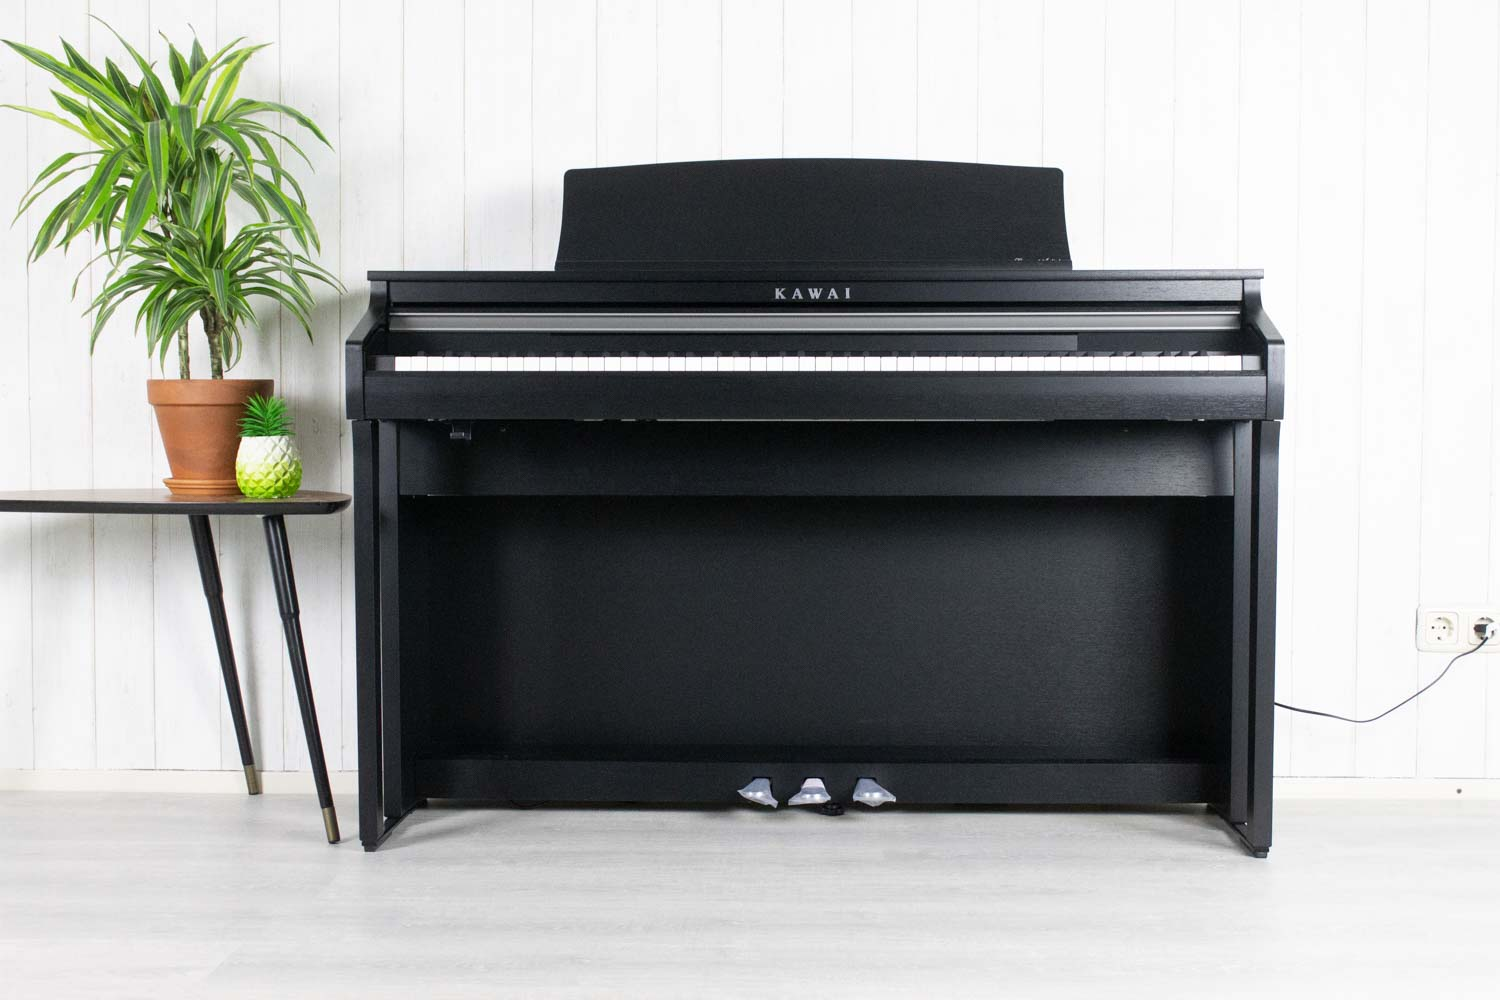 Kawai CA48 Satin Black digitale piano (5407633473700)